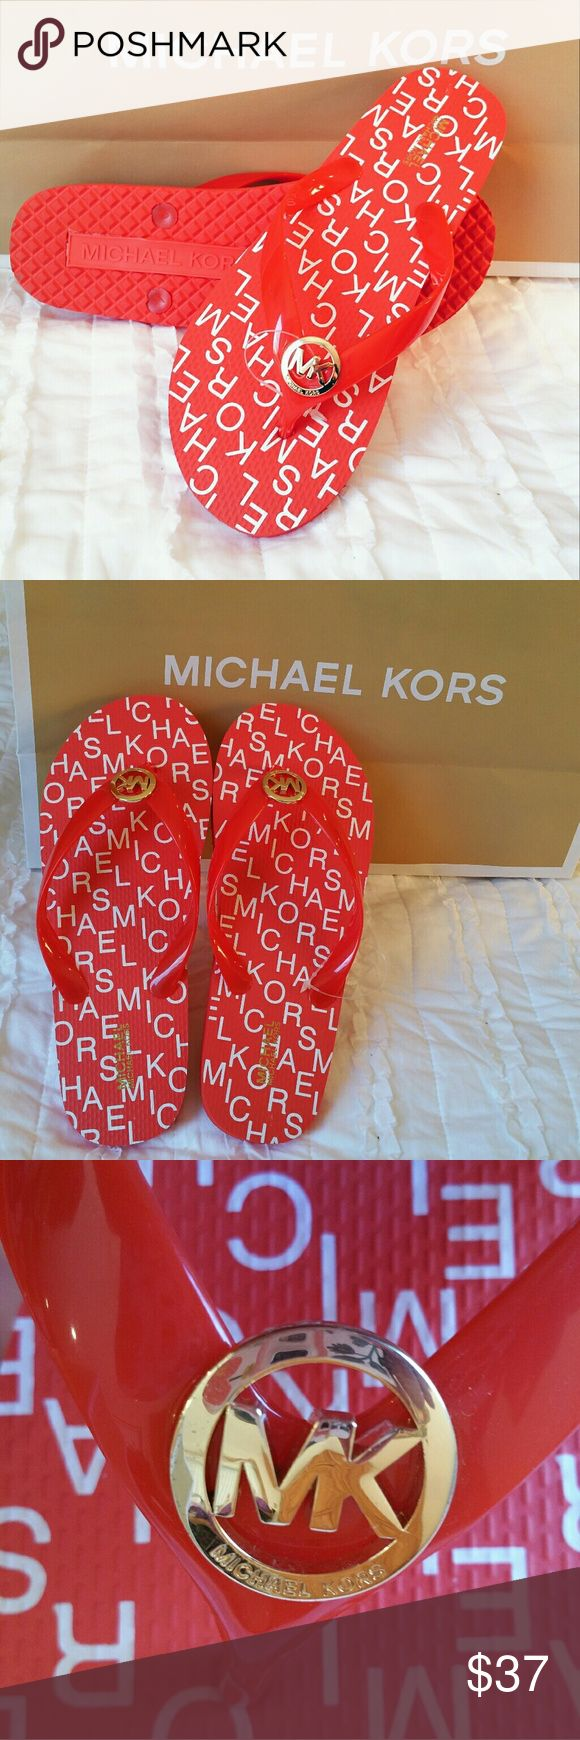 {Michael Kors} signature logo red flip flops New WITHOUT tags! Has plastic holder still attached Michael kors Red with MK logo Gold tone hardware Style # RX16J Available sizes: 9 MICHAEL Michael Kors Shoes Sandals